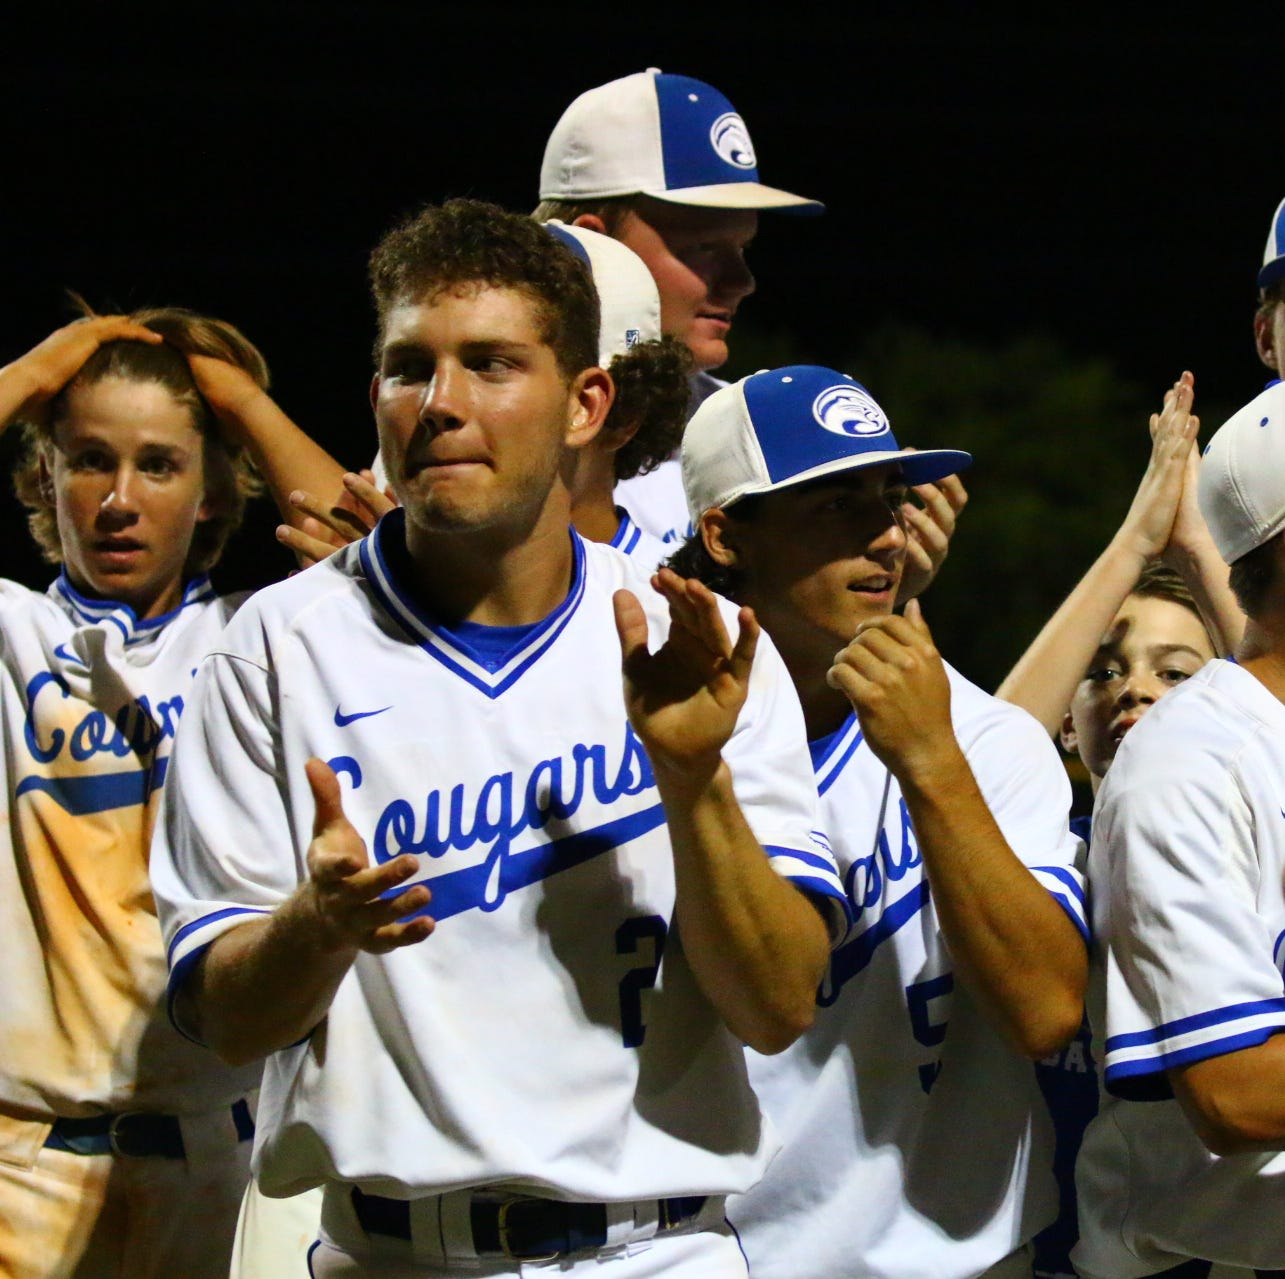 State Baseball: With a tough challenge ahead, Canterbury chasing history